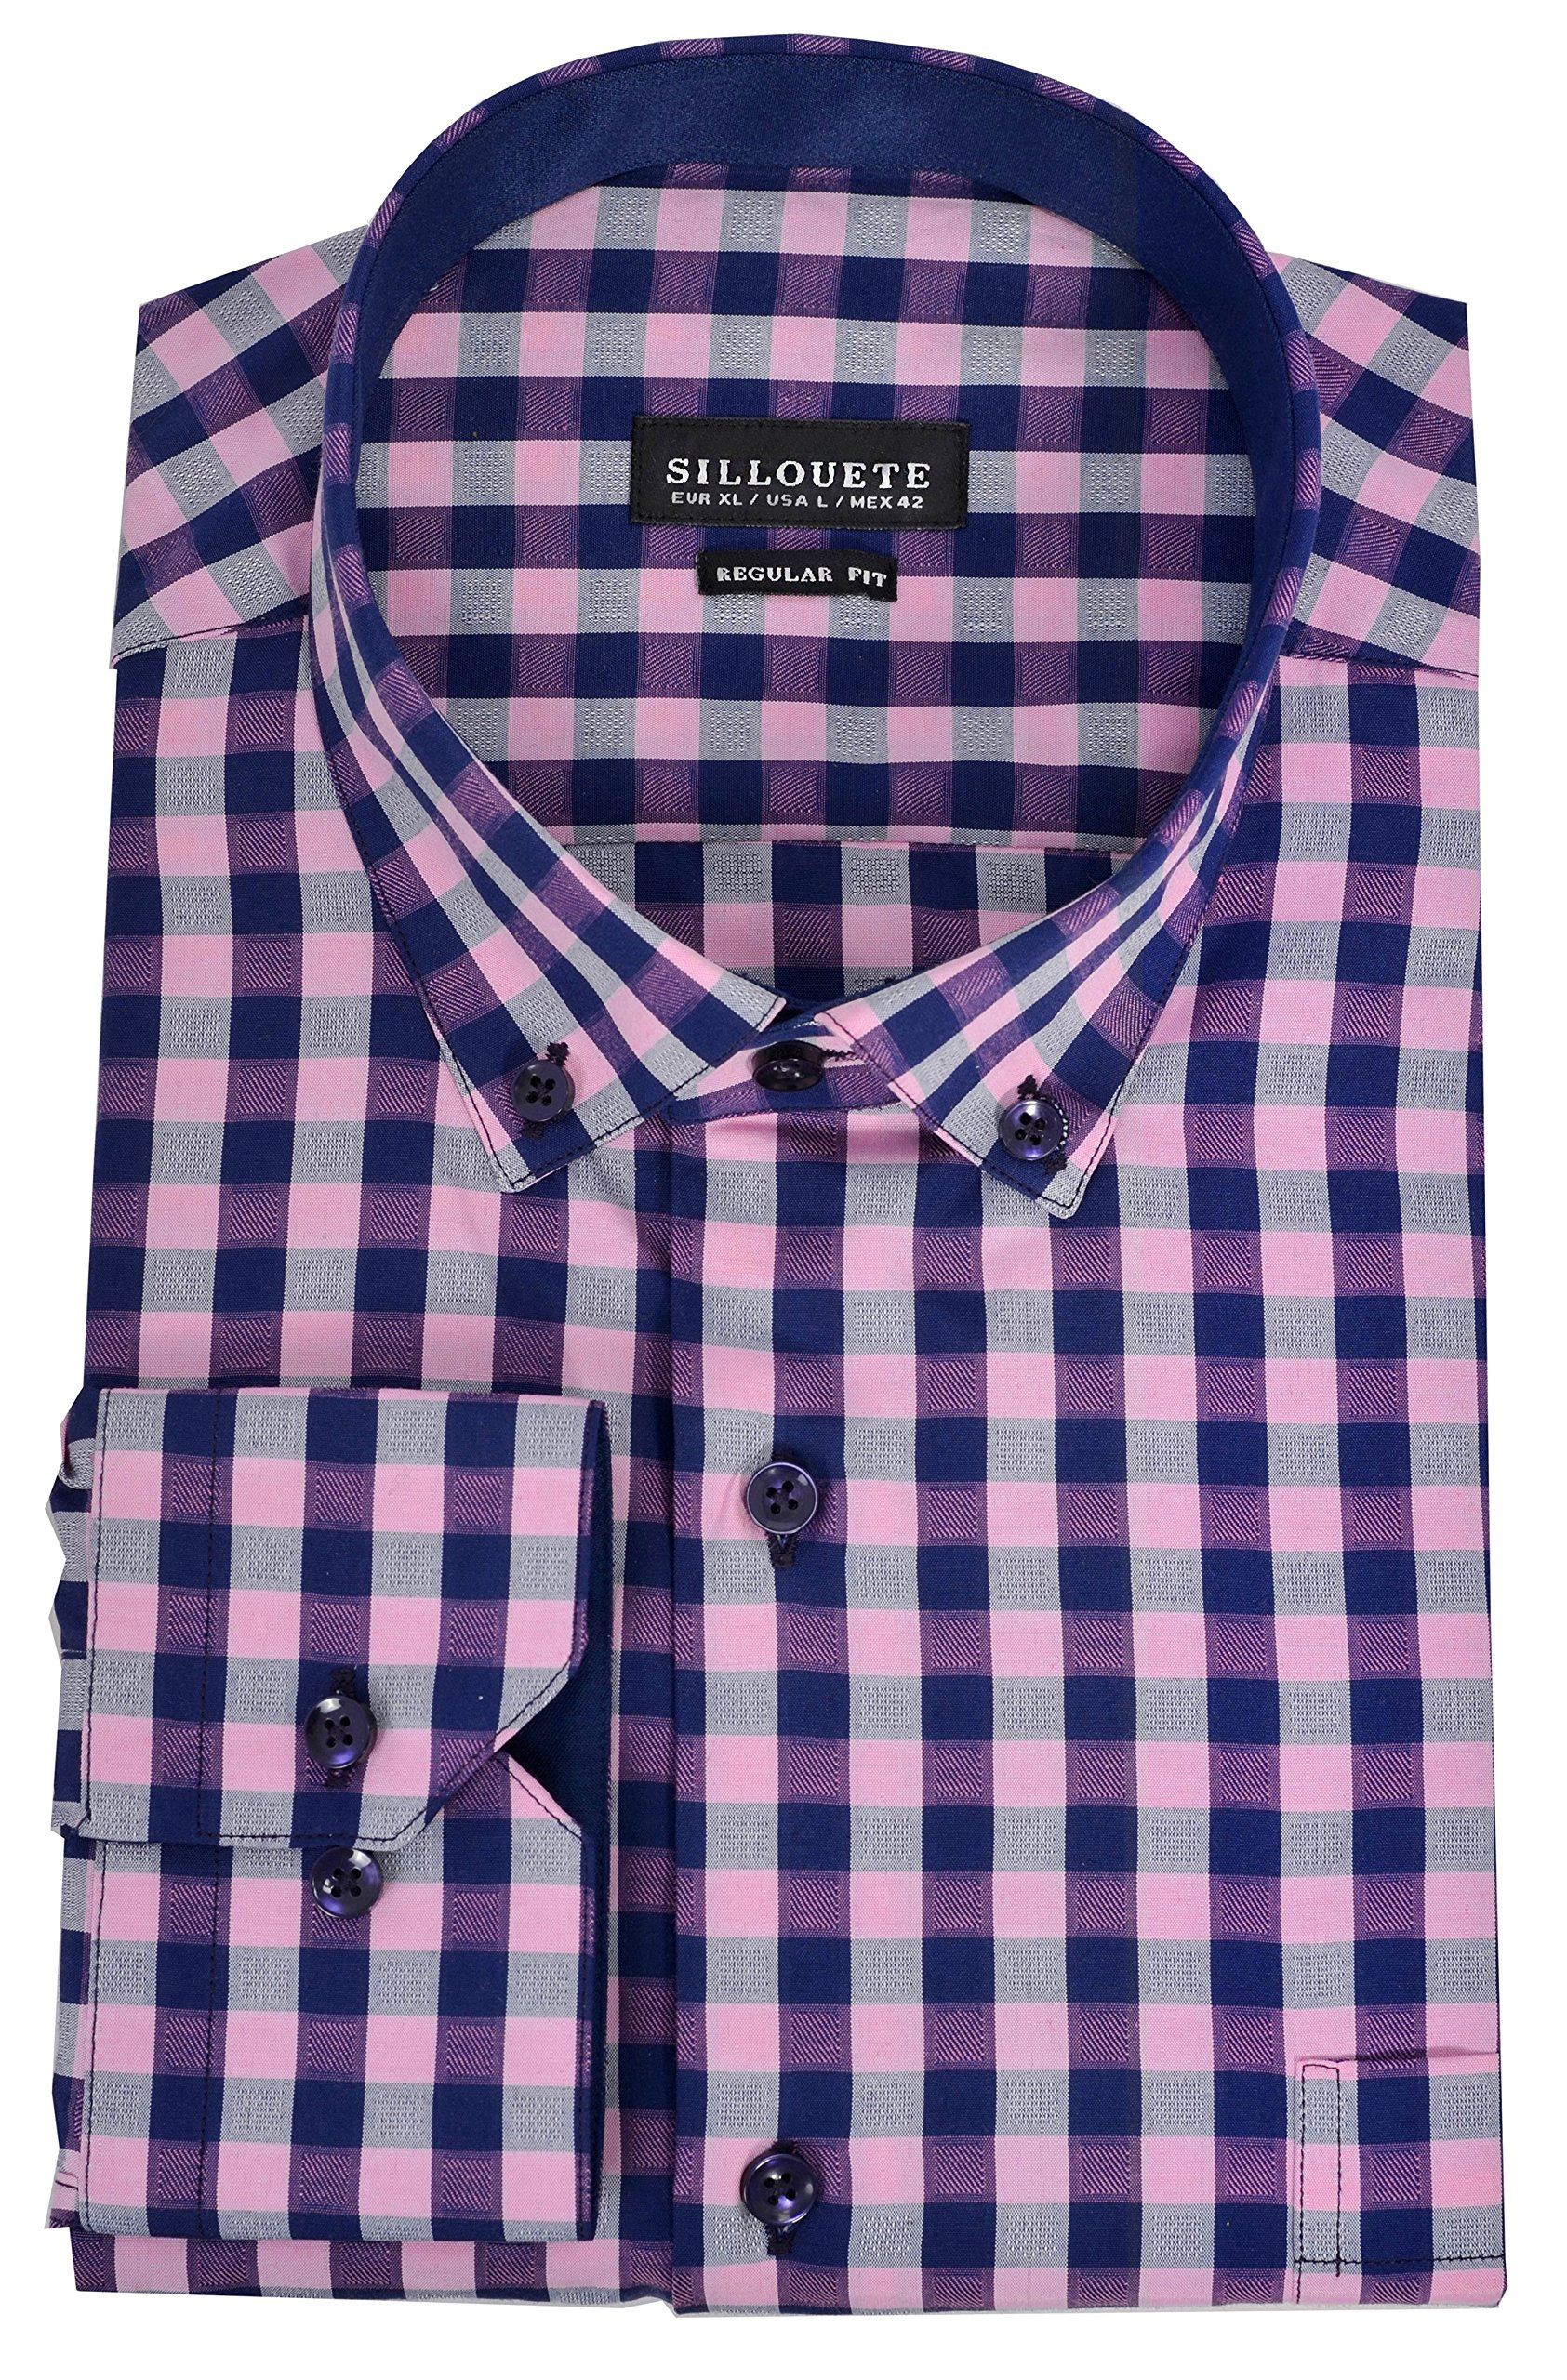 Men's Dress Shirt Long Sleeve Regular Fit Classic Button Down Collar, Pink/Navy Blue/Grey, US-X-Large